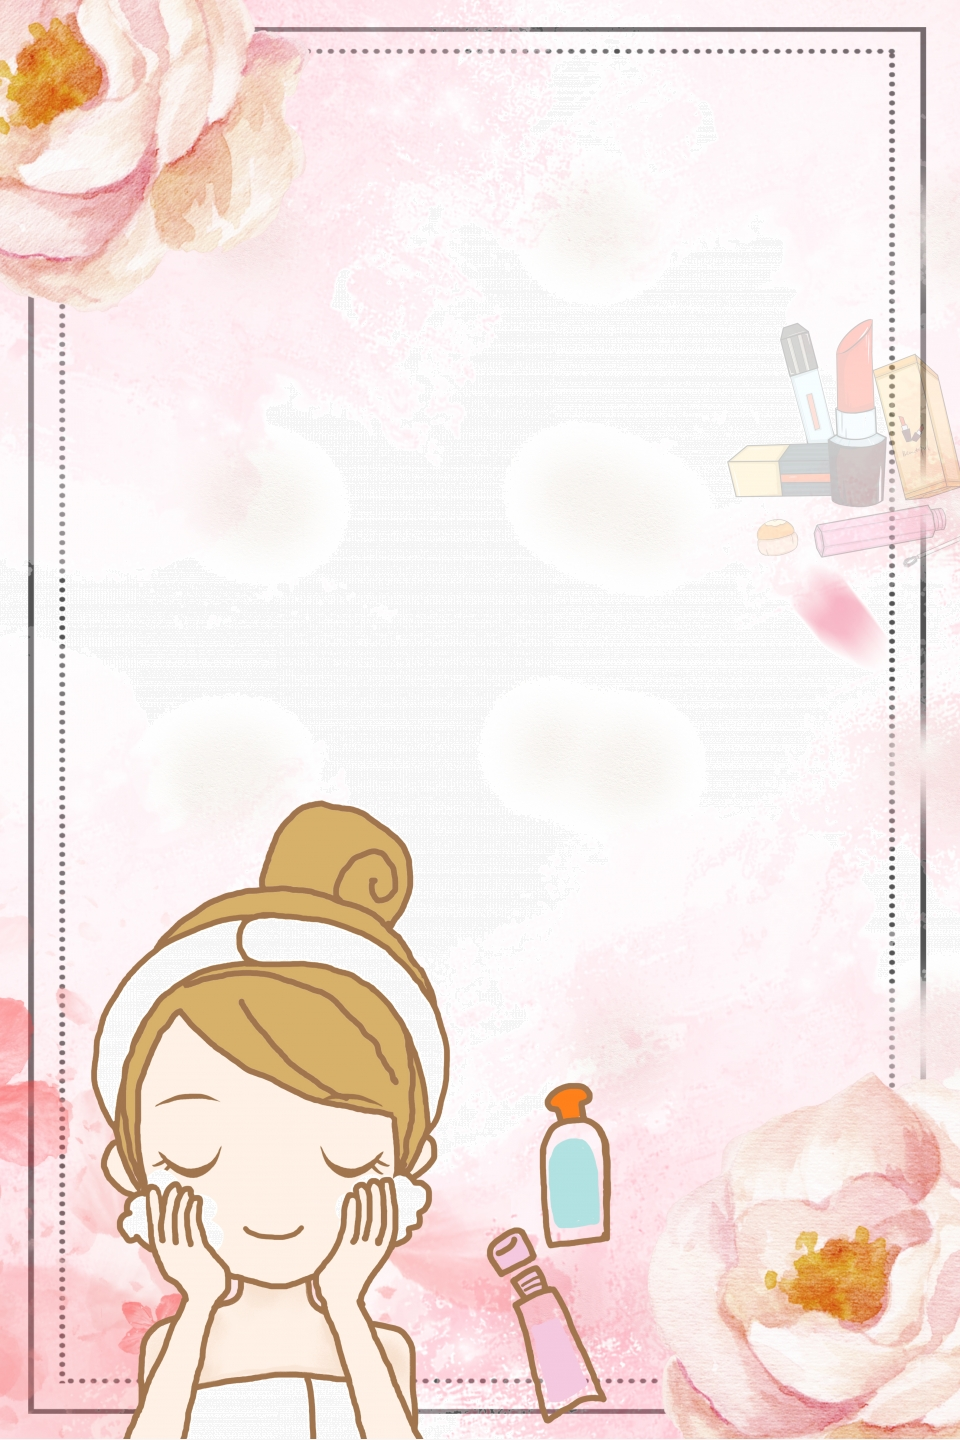 Beauty Skincare Poster Background Beauty Skin Care Beauty Poster Beauty Promotion Background Image For Free Download